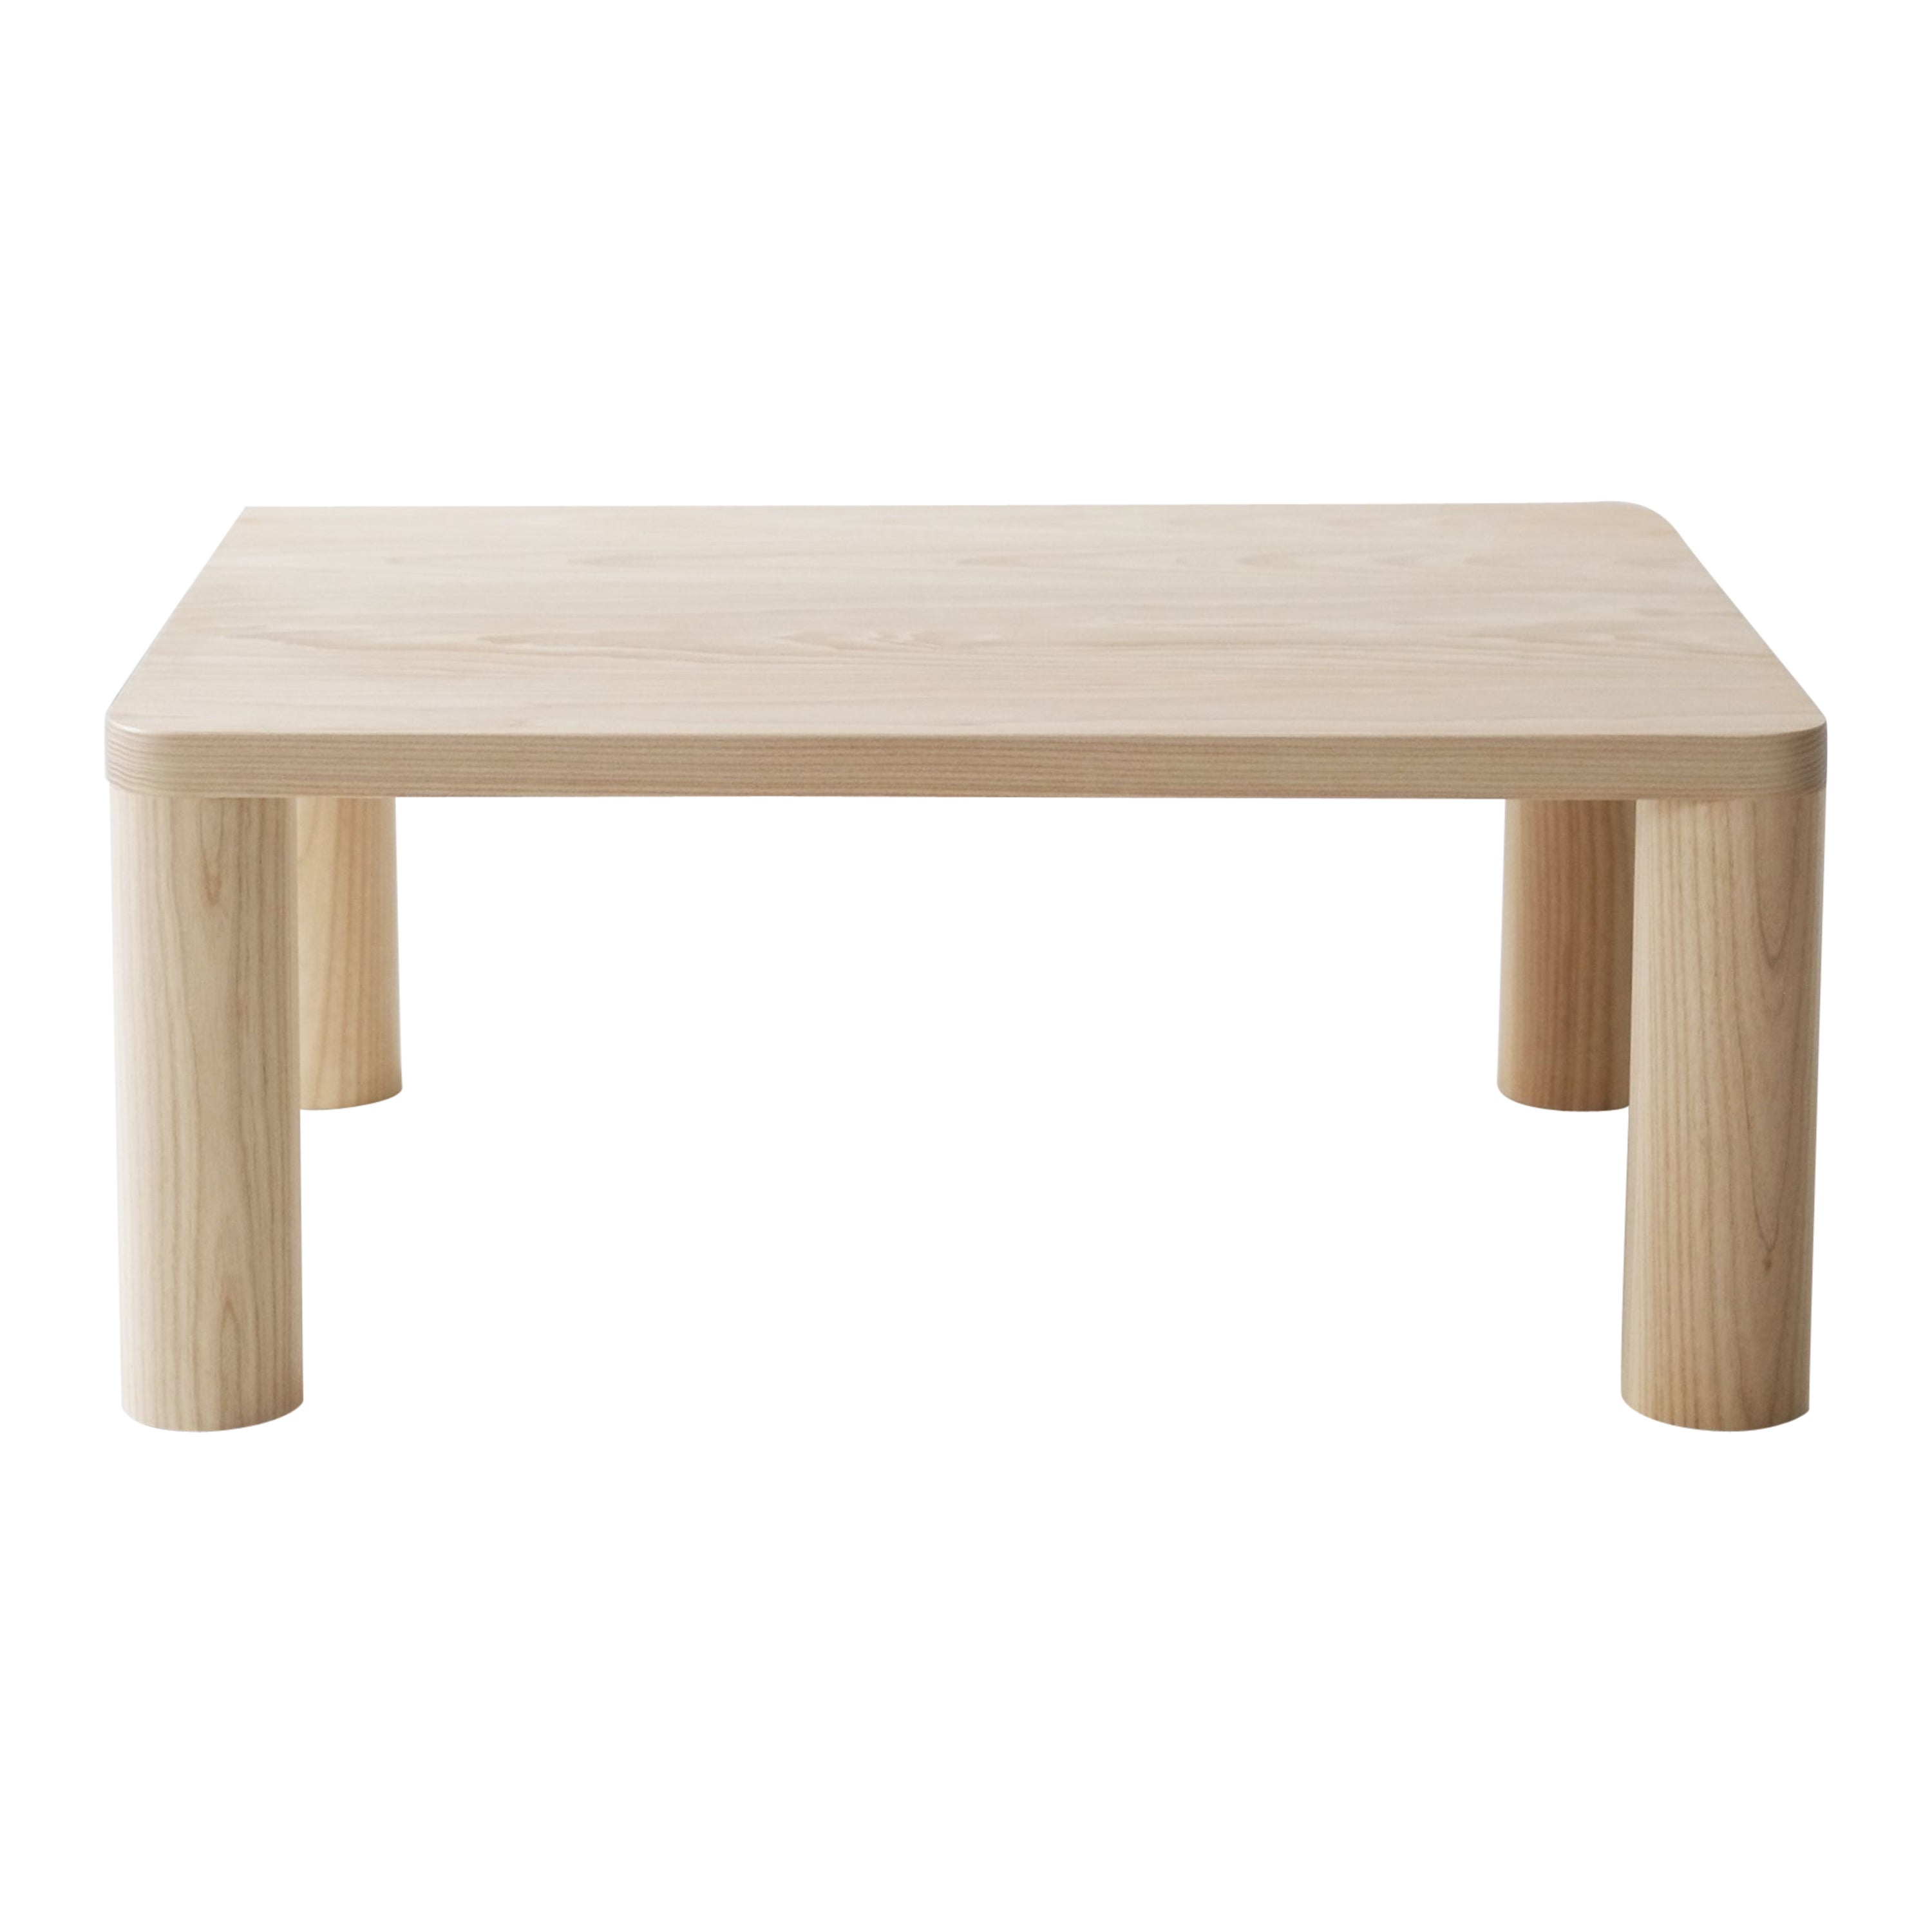 Contemporary Corner Leg Wood Column Coffee Table in White Oak by Fort Standard